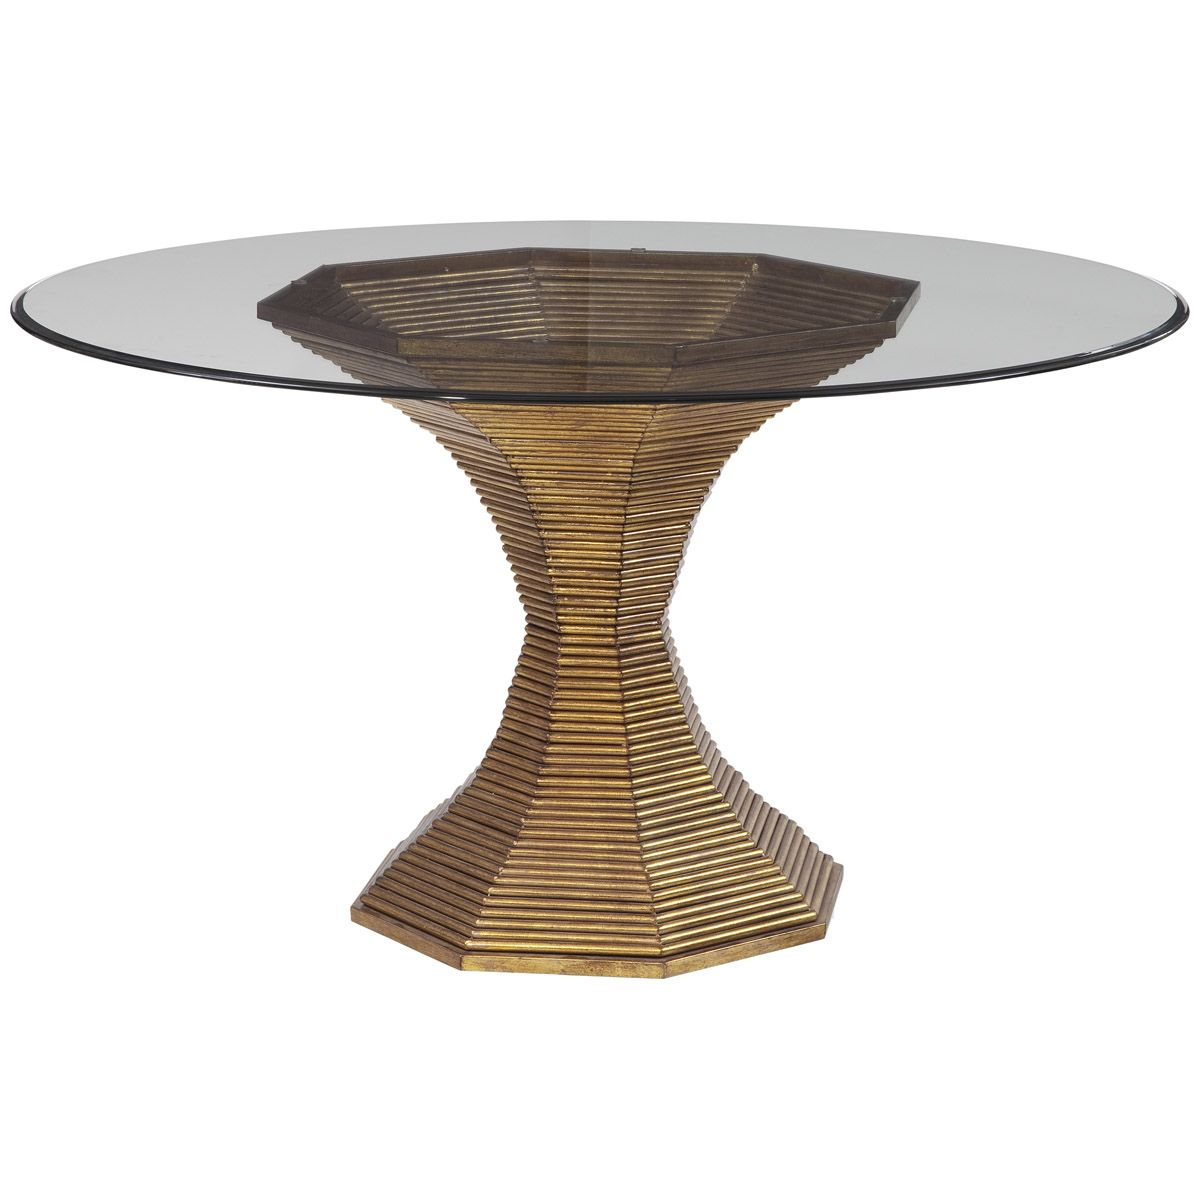 bassett mirror dining table. Bassett Mirror Thoroughly Modern Dakota RD Dining Table 2894-700-095EC D